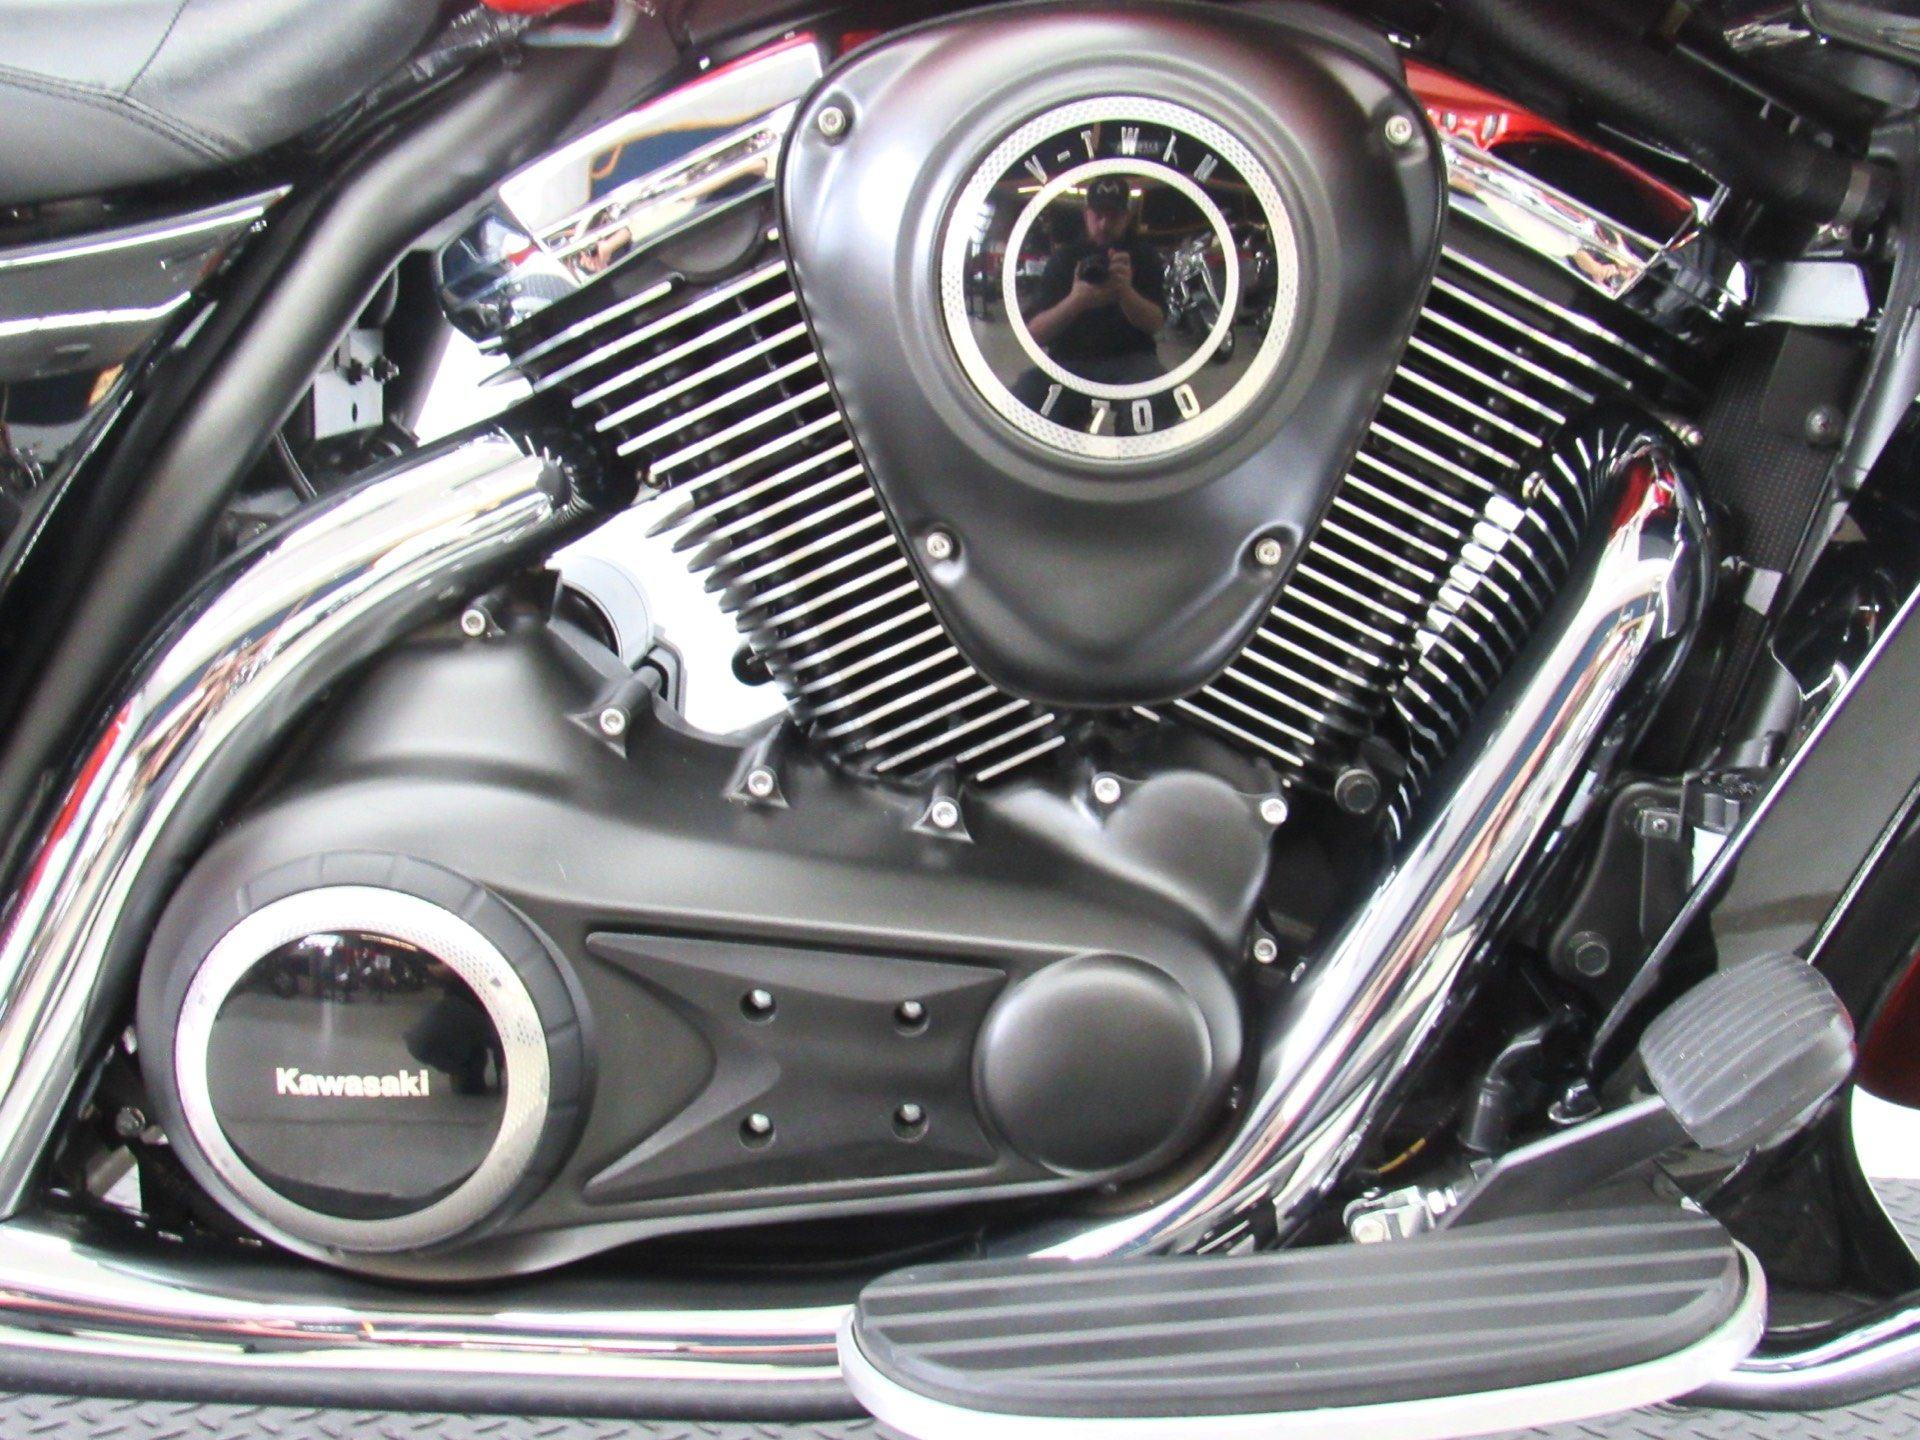 2014 Kawasaki Vulcan® 1700 Vaquero® ABS SE in Fredericksburg, Virginia - Photo 14